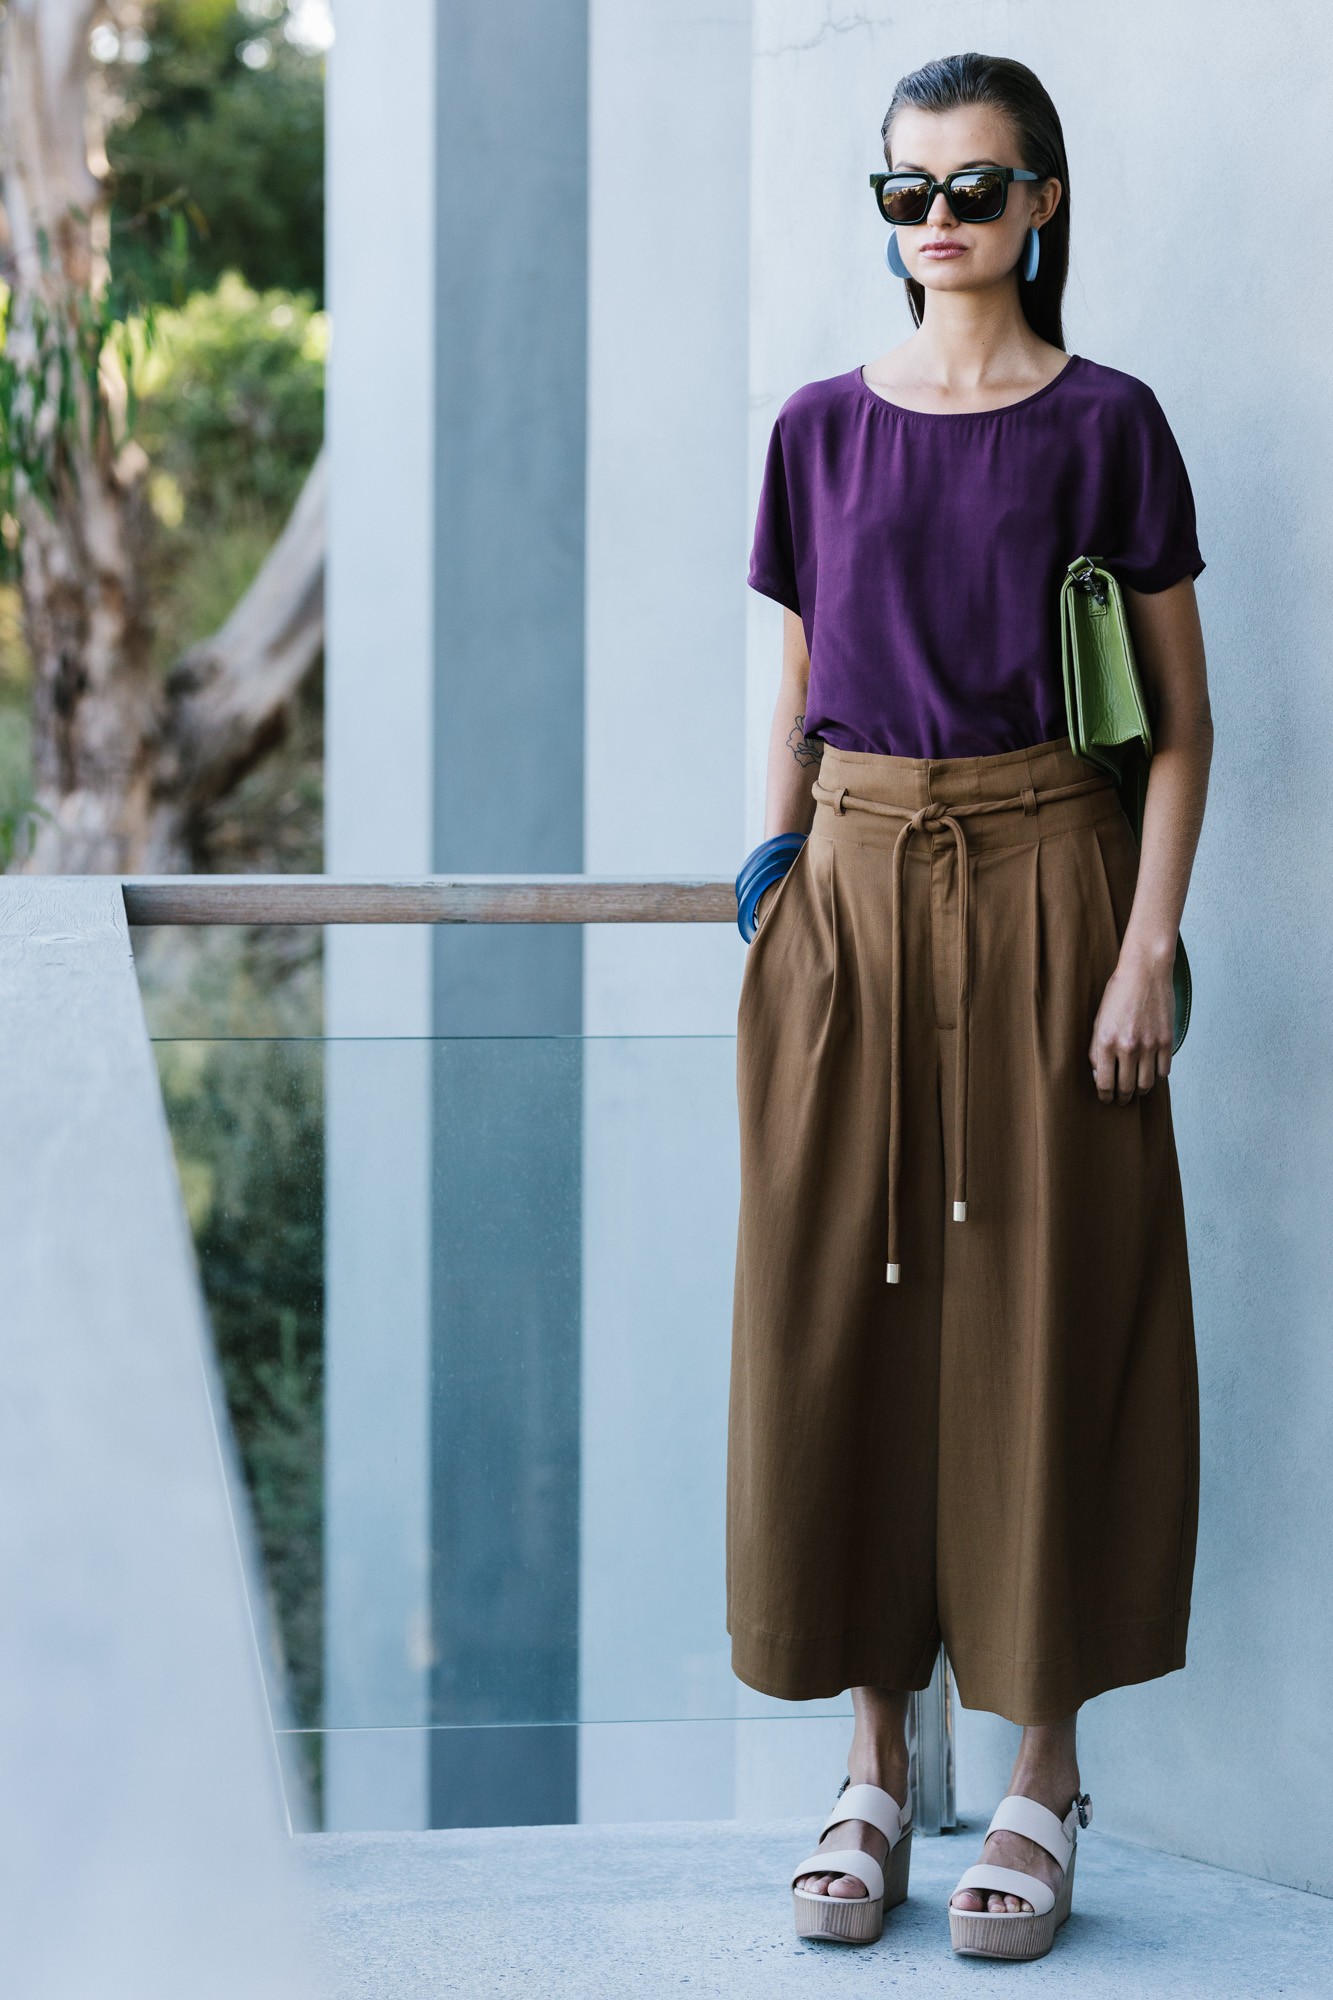 Marnie Hawson, Melbourne fashion photographer, for ELK the Label - Summer 18-19 campaign